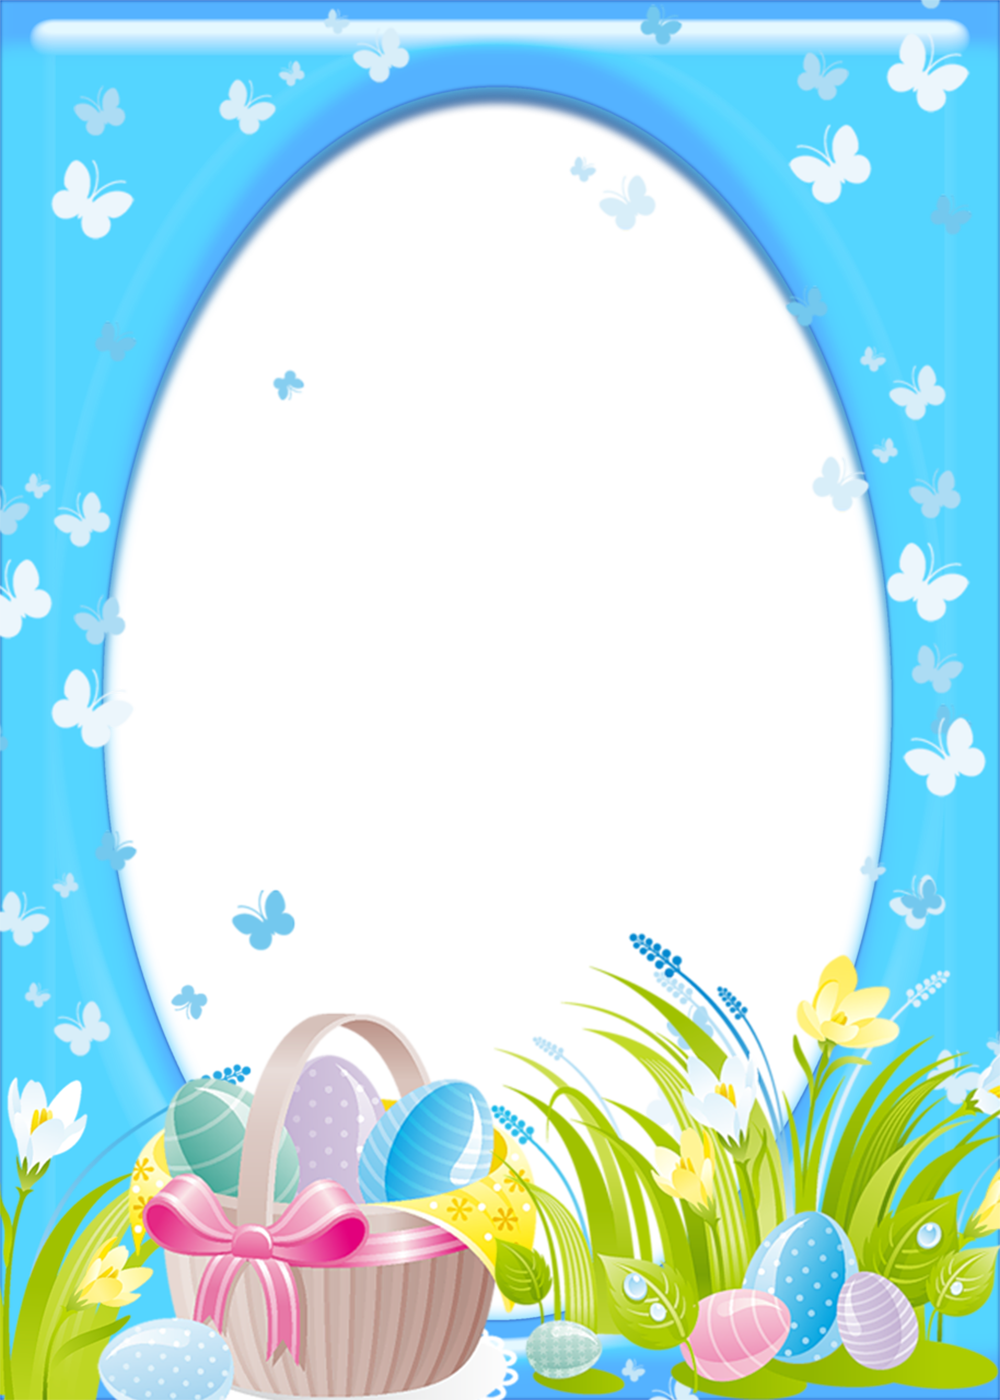 Easter Transparent Png Frame Gallery Yopriceville High Quality Images And Transparent Png Free C Easter Picture Frames Easter Photo Frames Easter Pictures